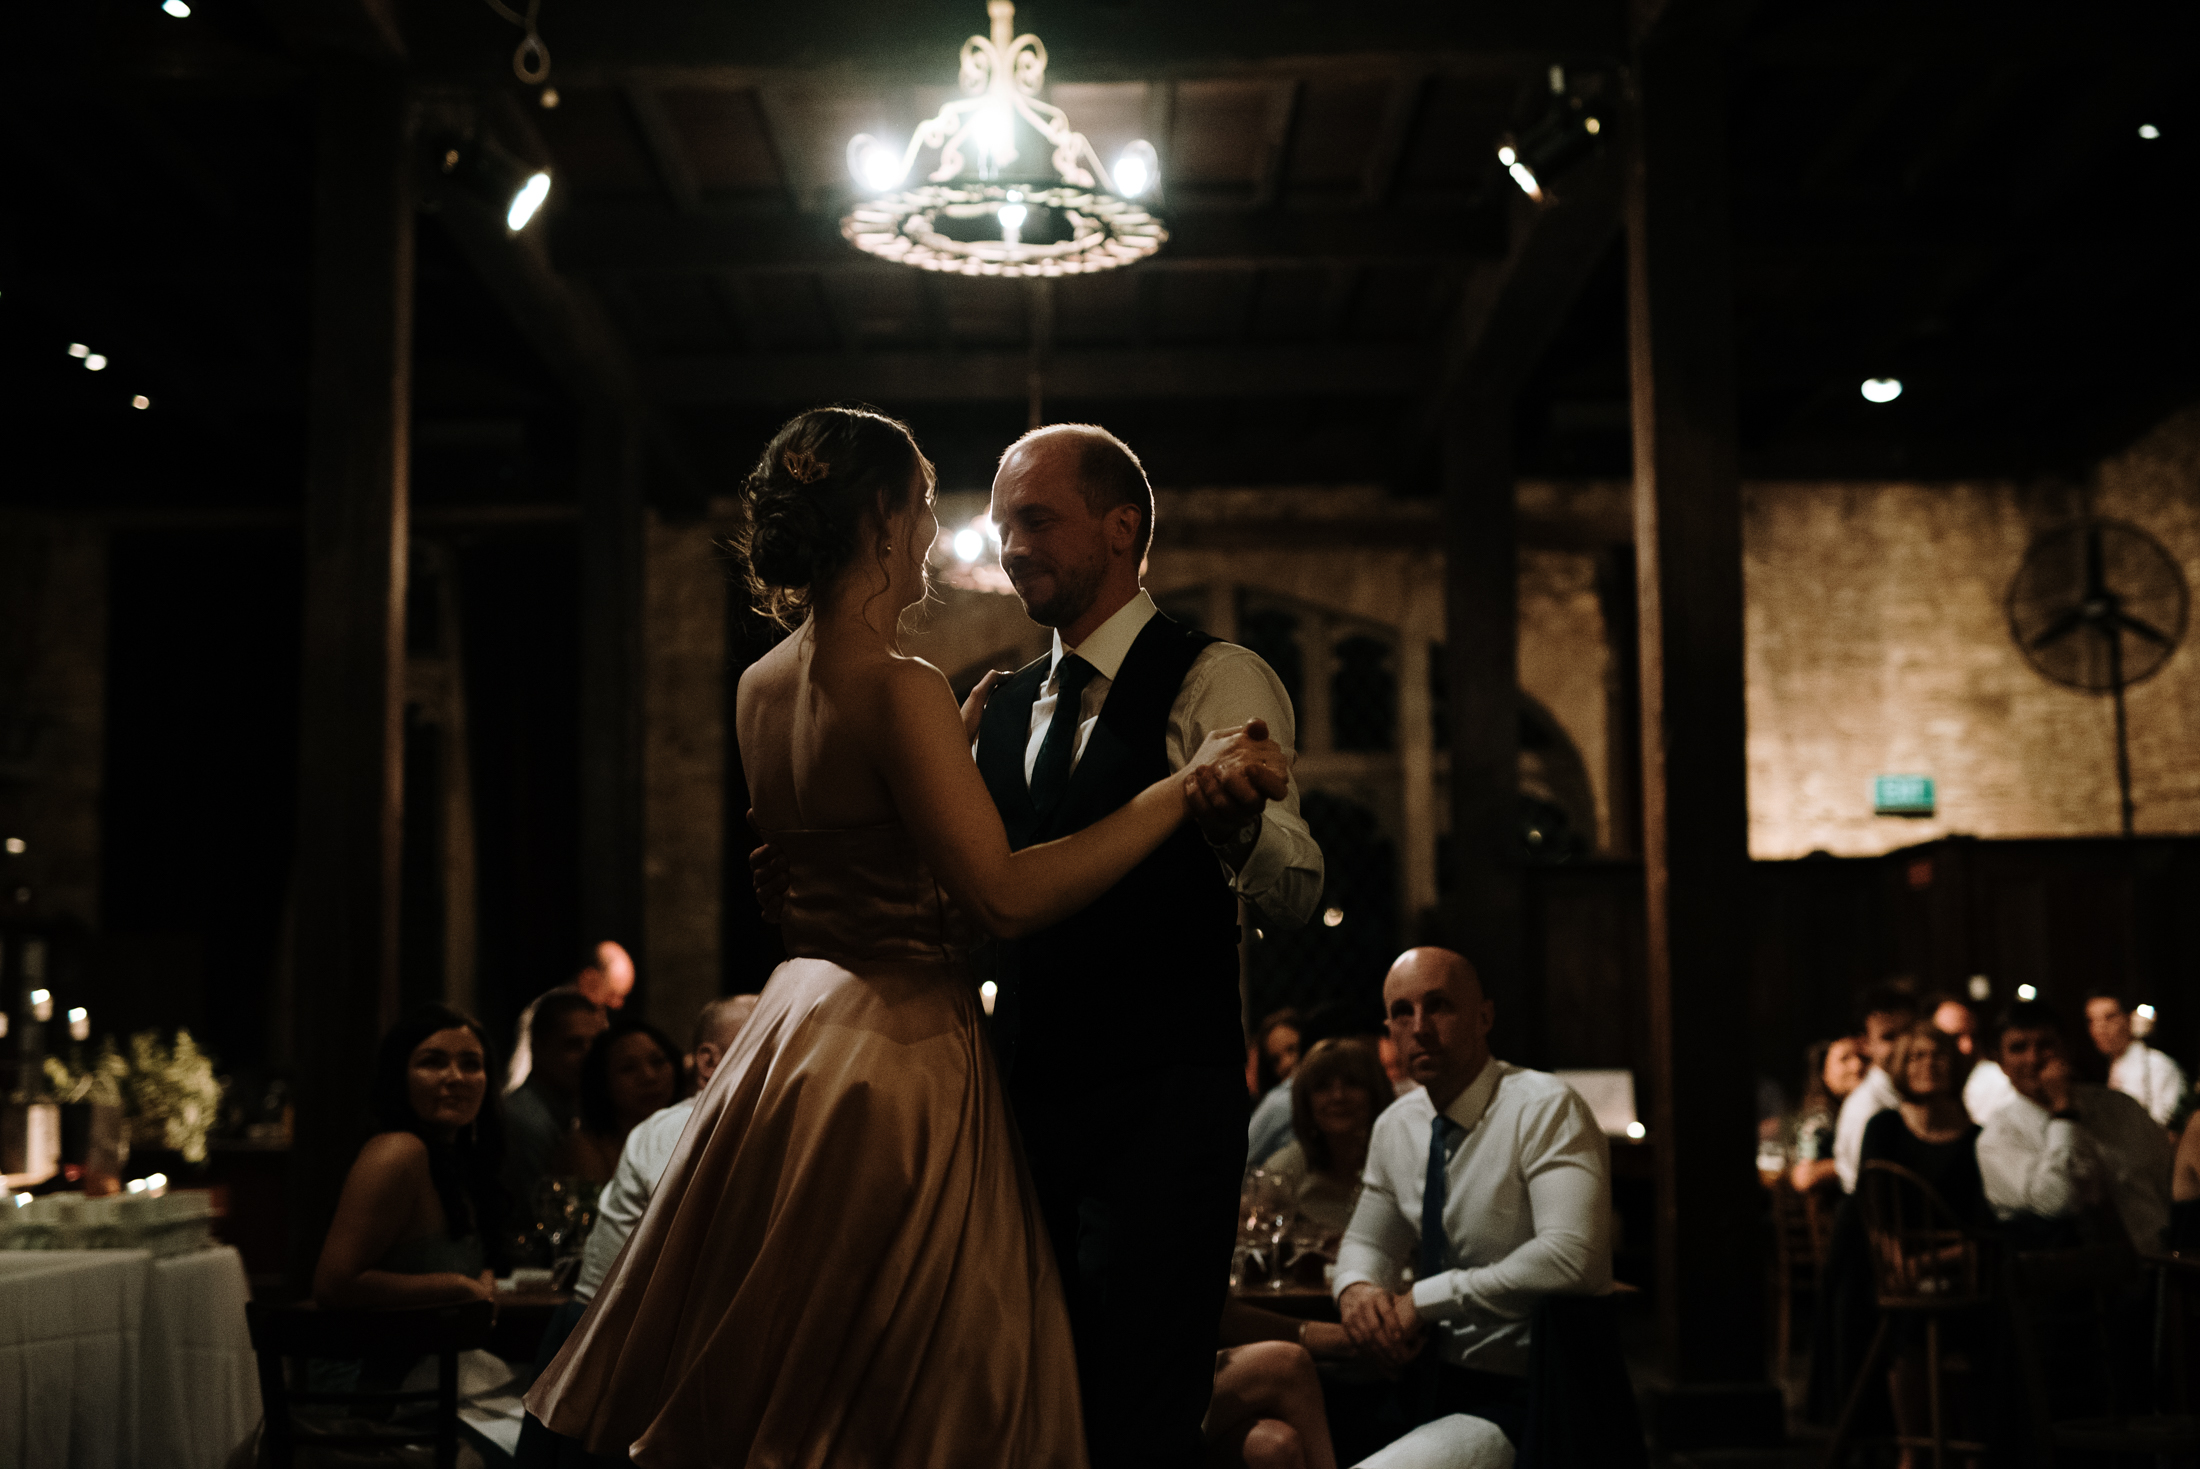 Wedding photographer Melbourne, Montsalvat wedding